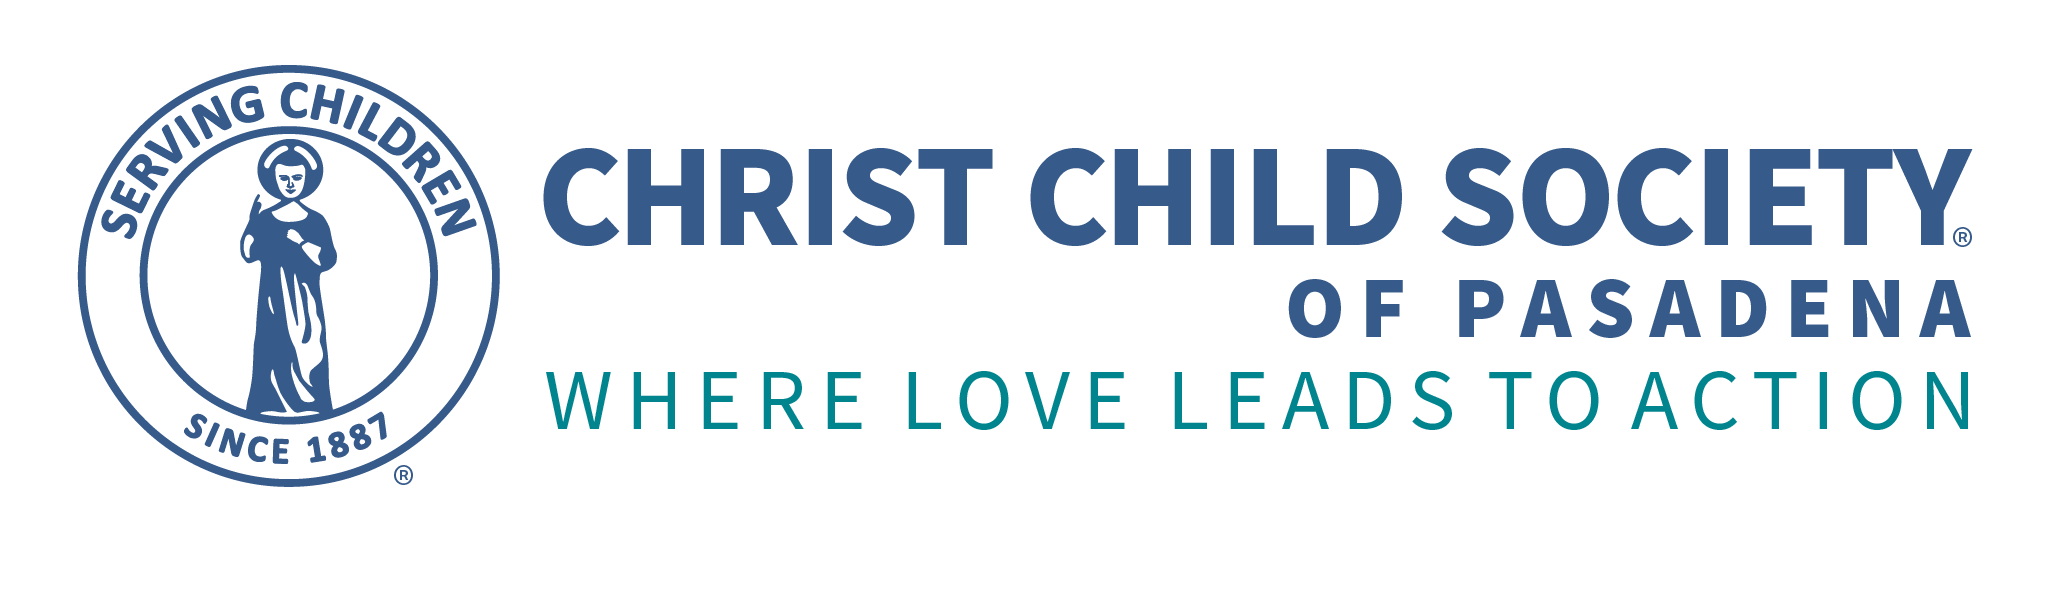 Christ Child Society of Pasadena